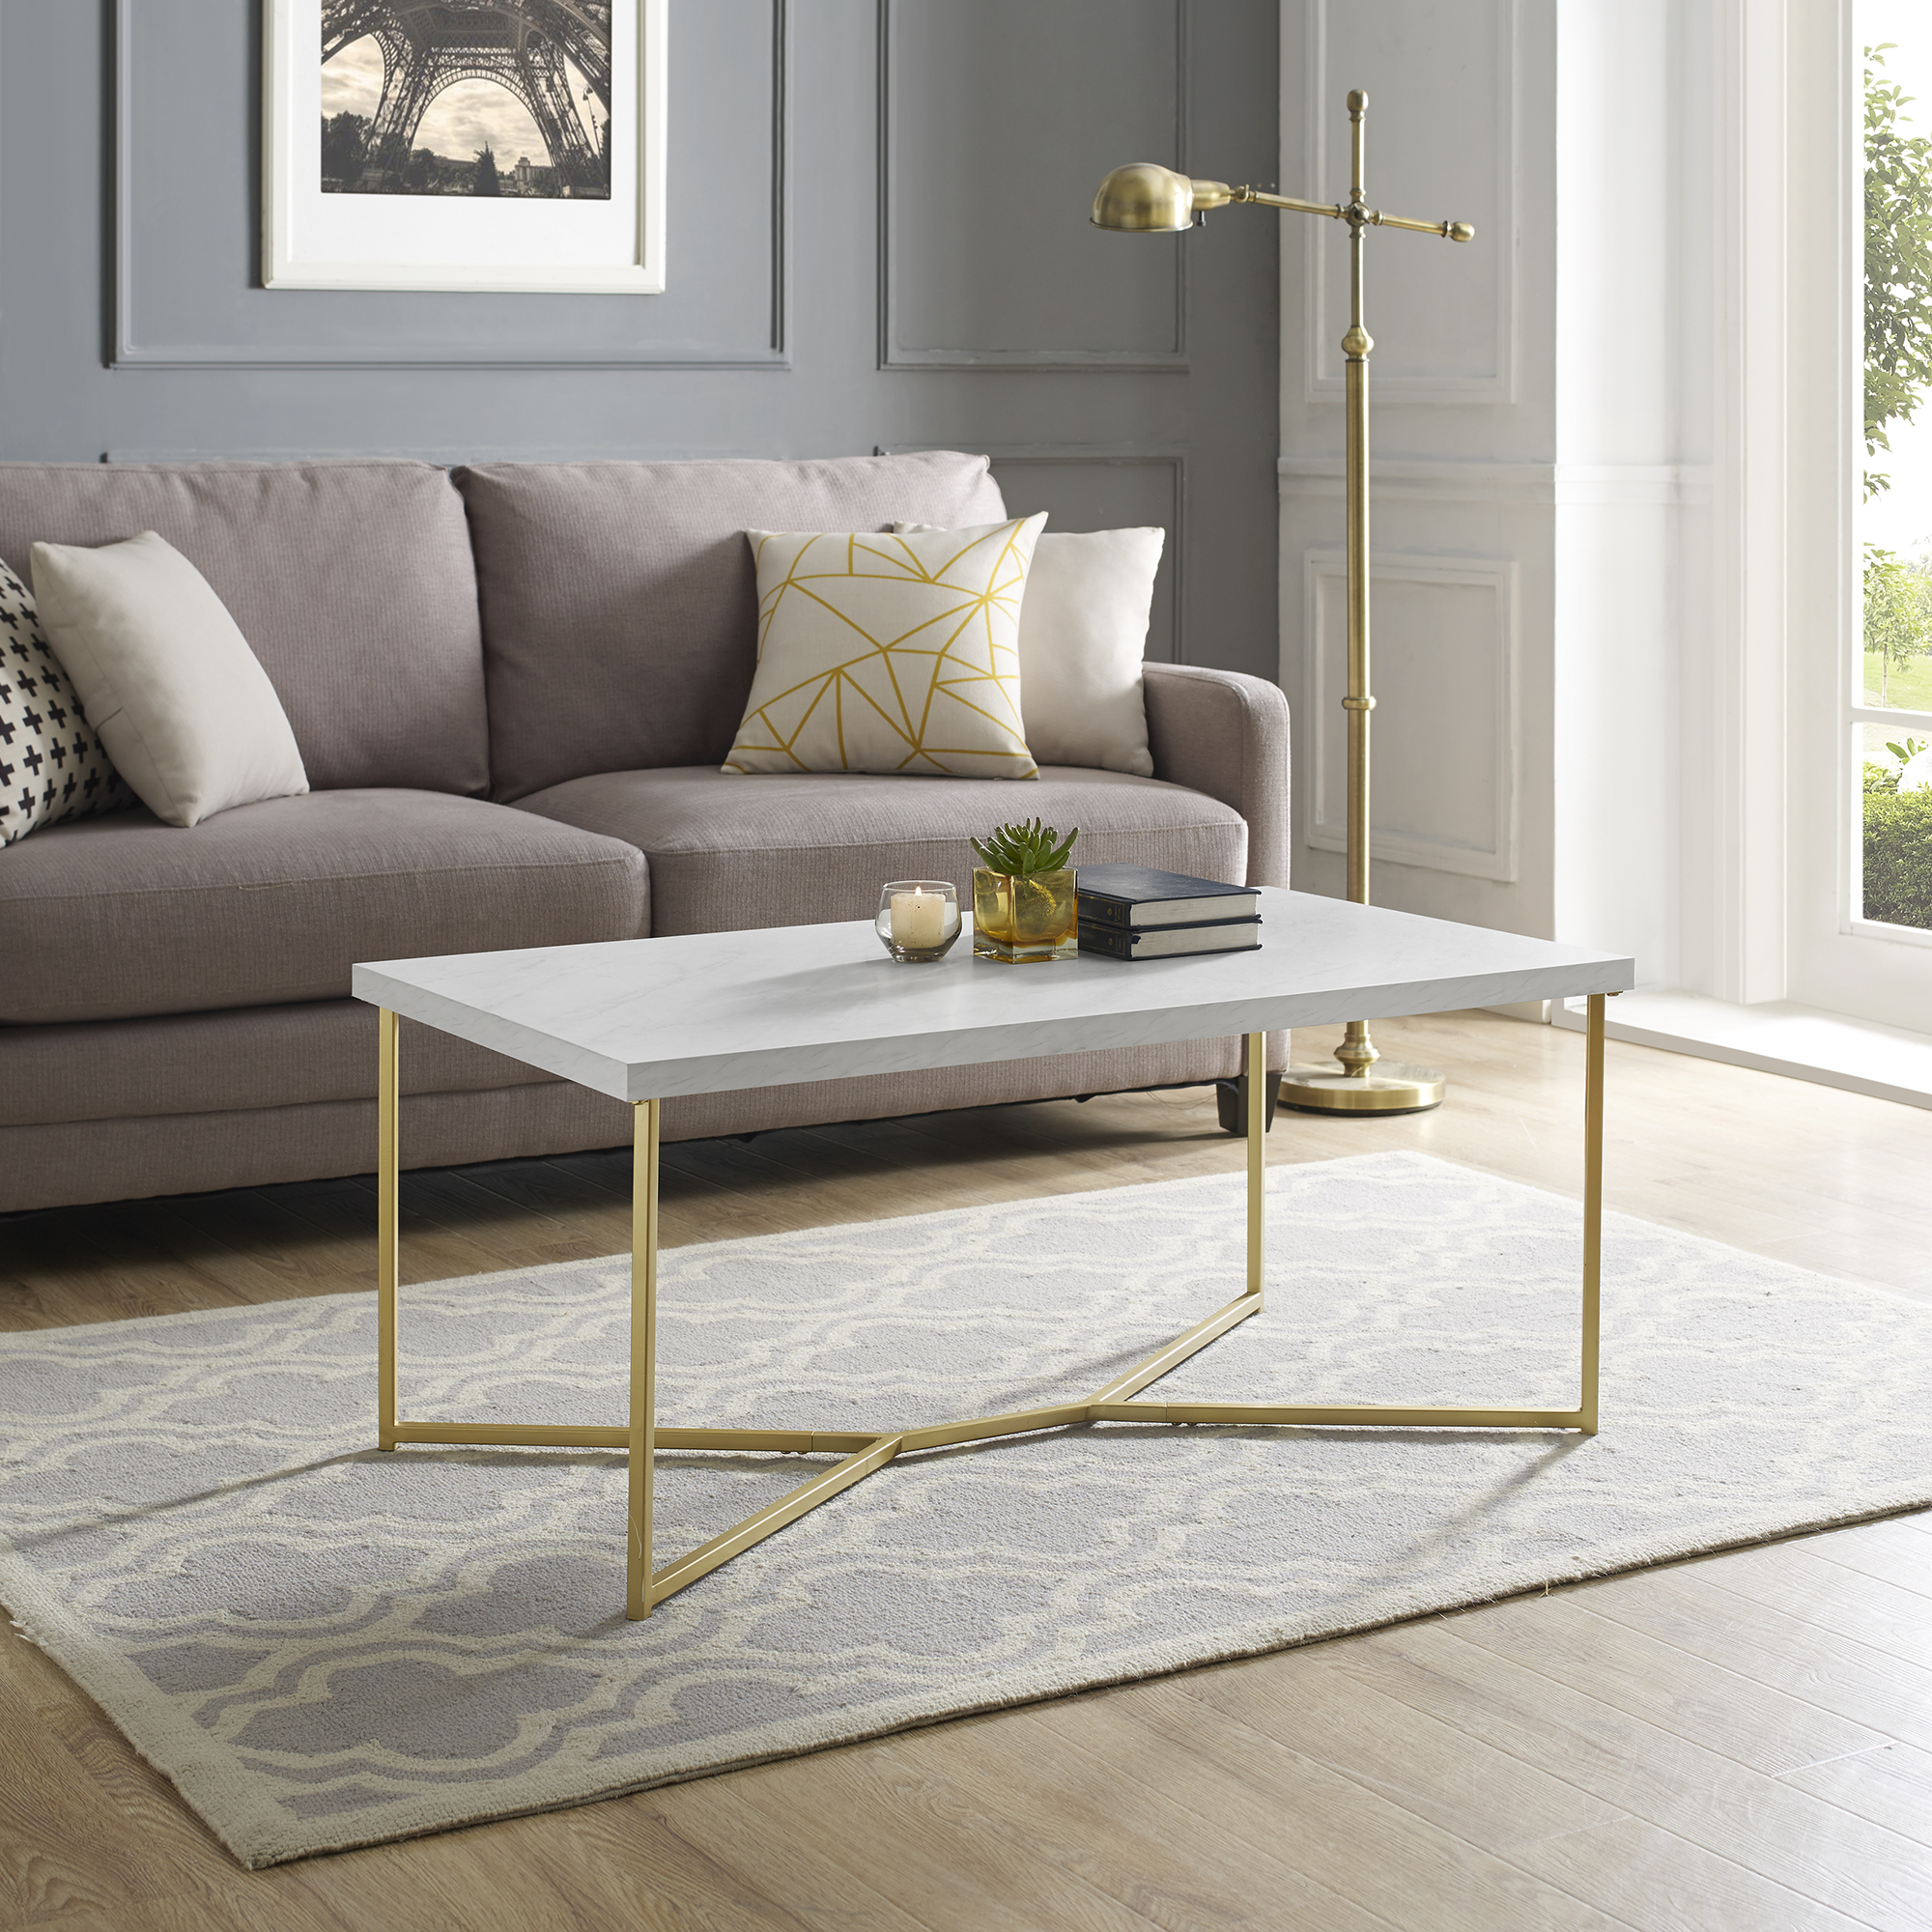 Modern 42 inch Y-Leg Coffee Table, White Marble/Gold